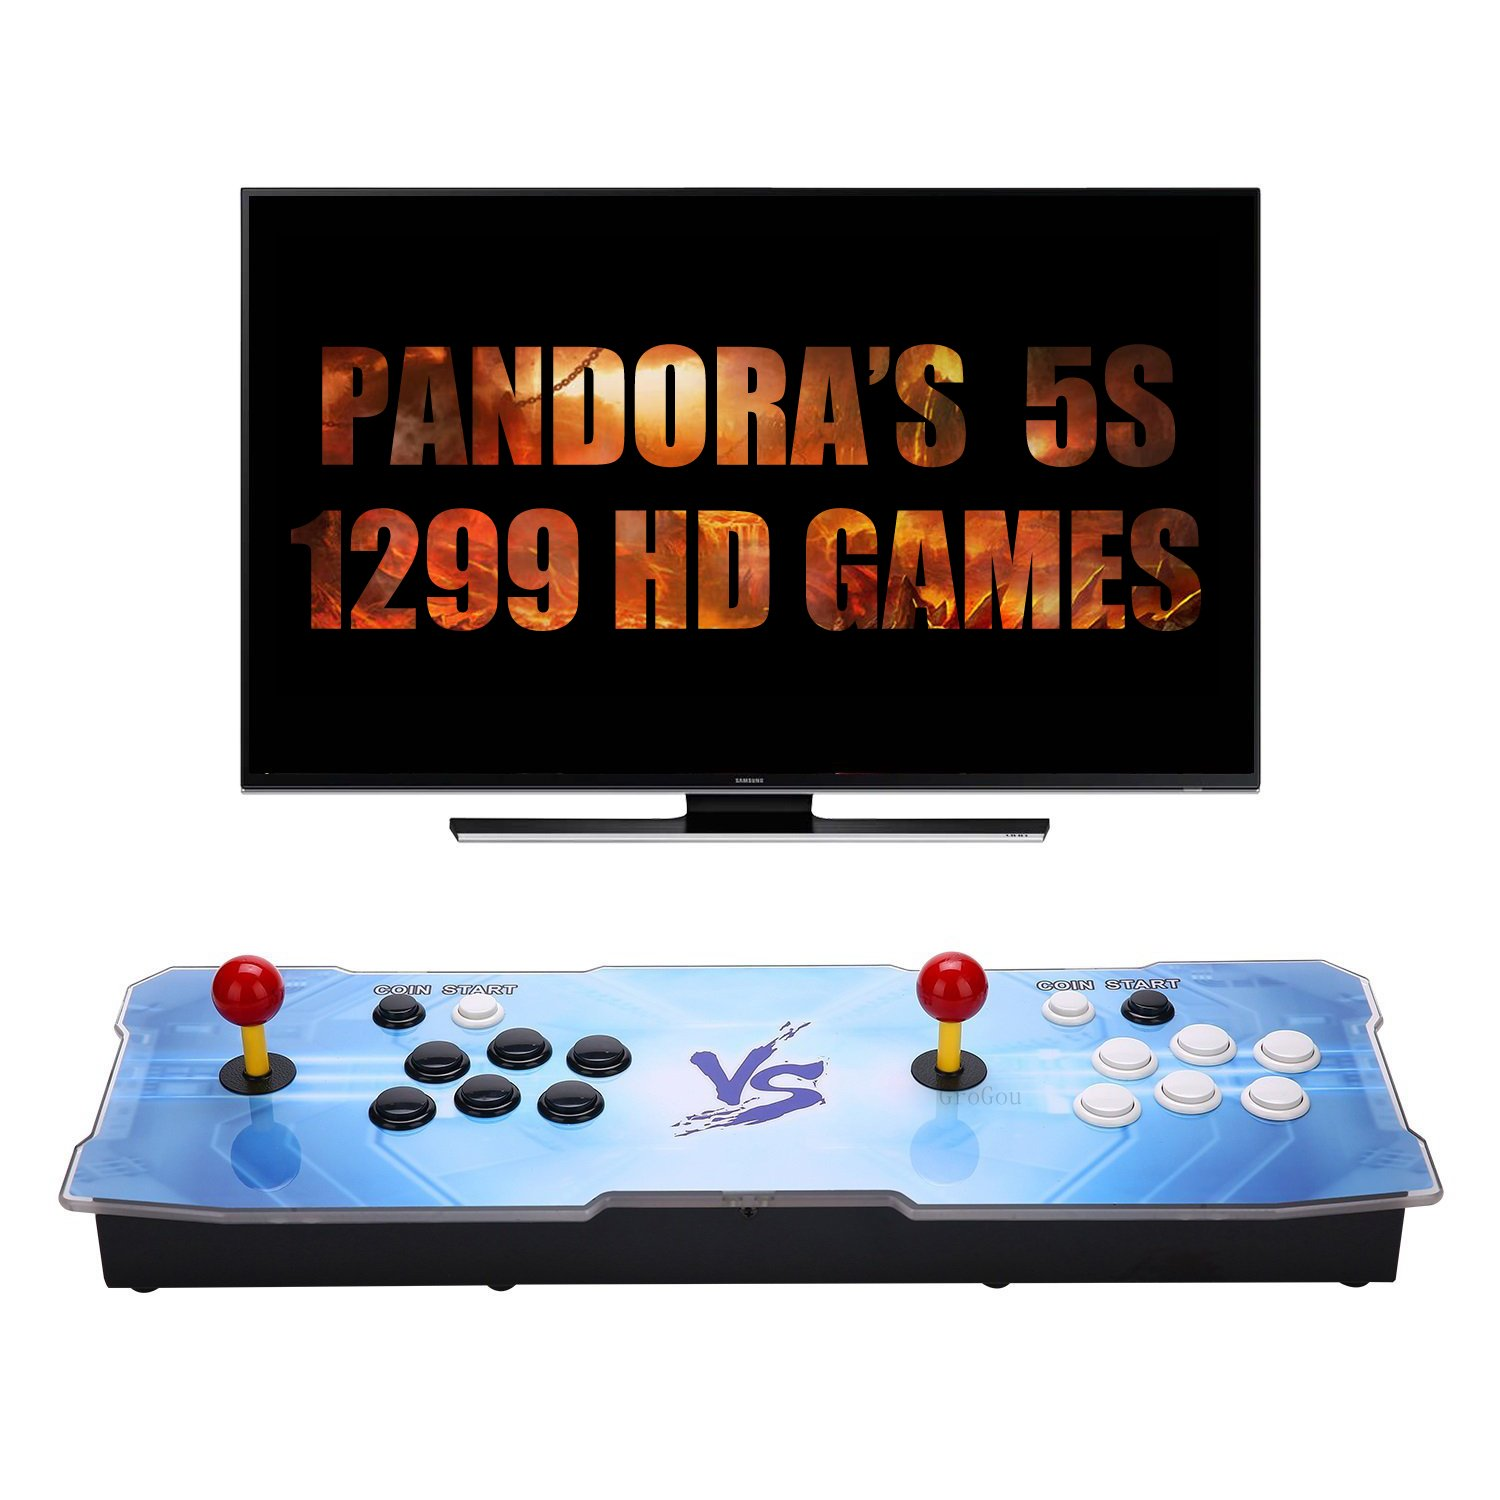 [999 HD Arcade Games] GroGou Arcade Video Game Console 999 Retro Games Pandora's Box 5s Plus Colorful LED Arcade Machine Double Arcade Joystick Built-in Speaker